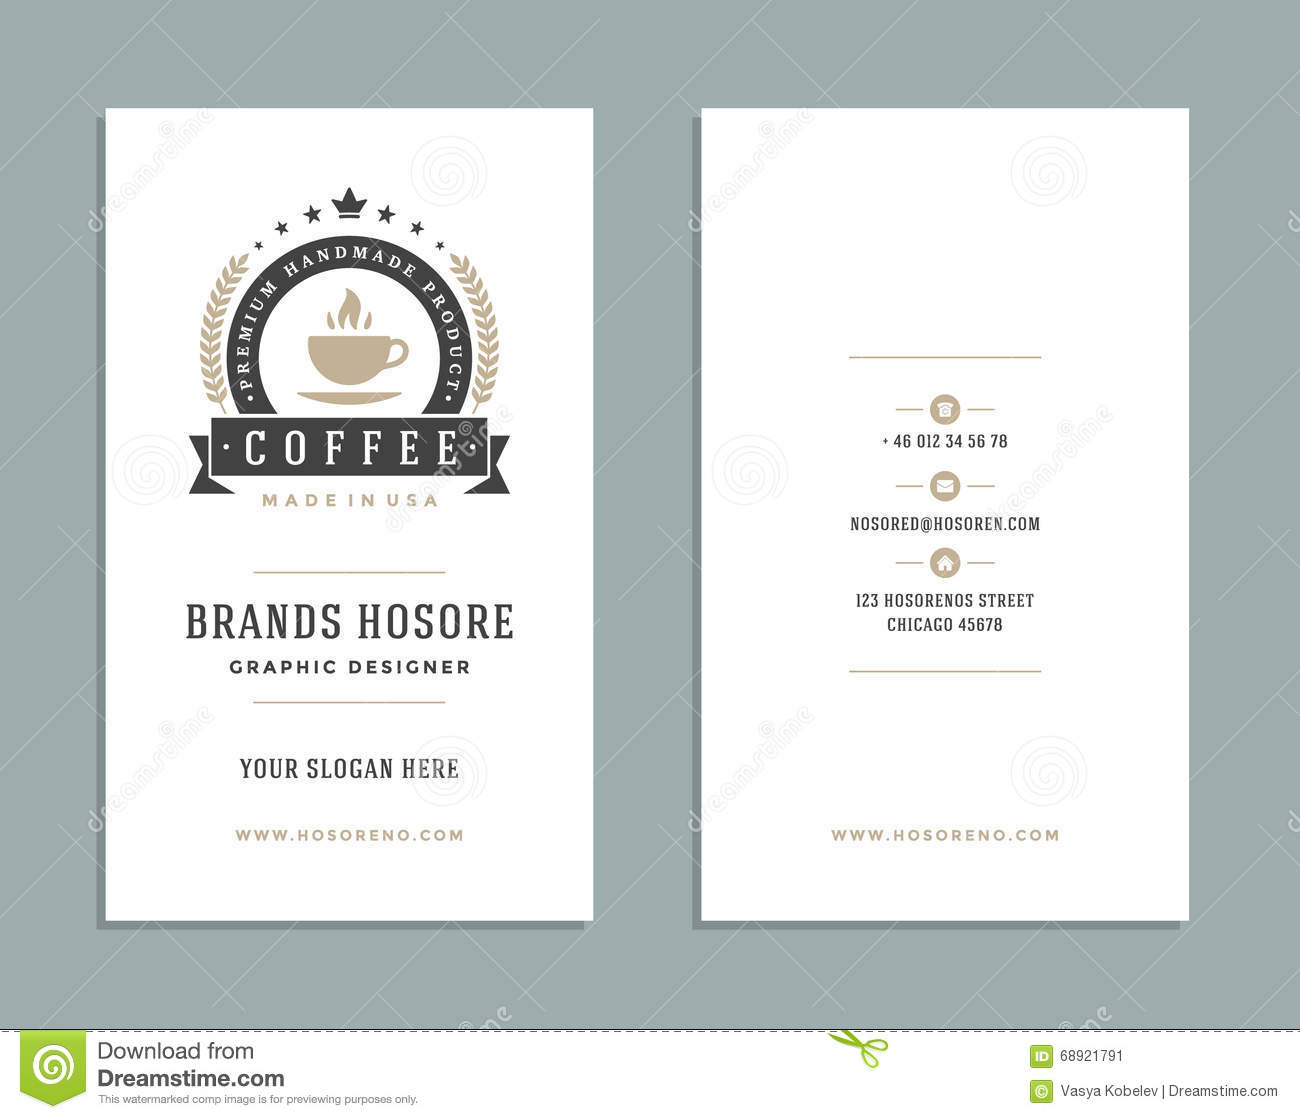 Business card design and retro logo template vector design element download business card design and retro logo template vector design element vintage style for logotype reheart Gallery